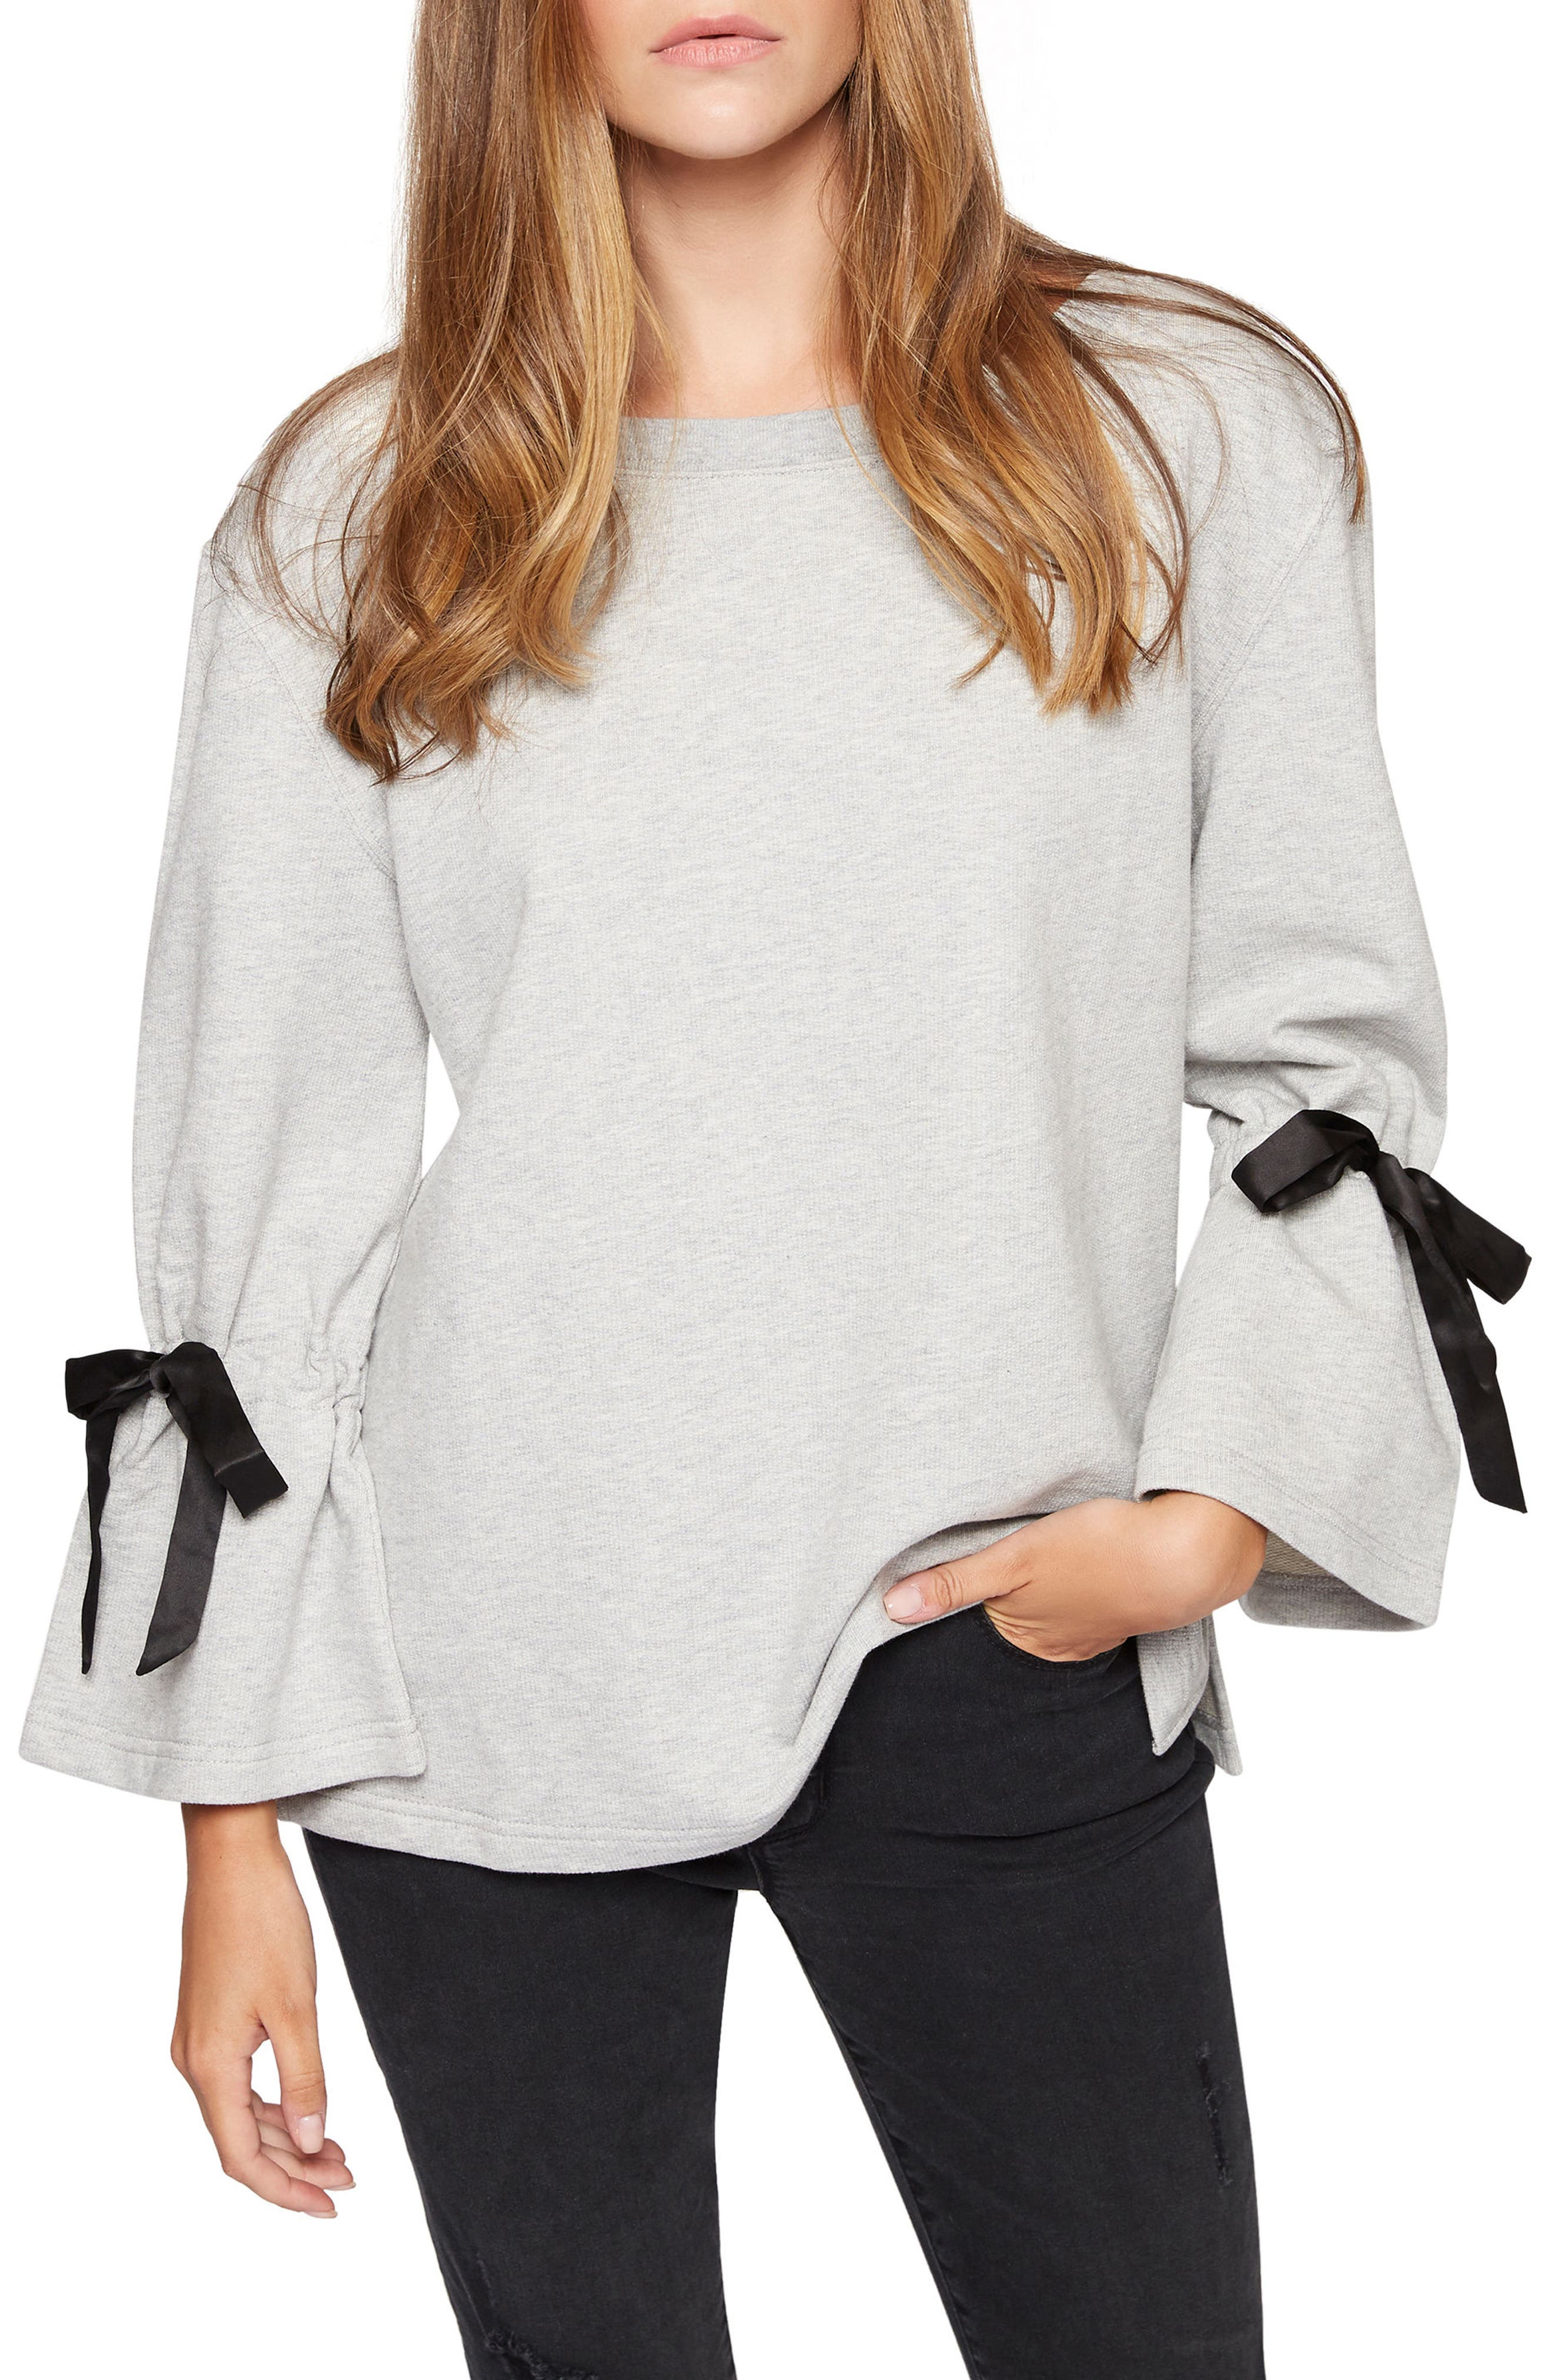 Main Image - Sanctuary Tierney Tie Sleeve Sweatshirt